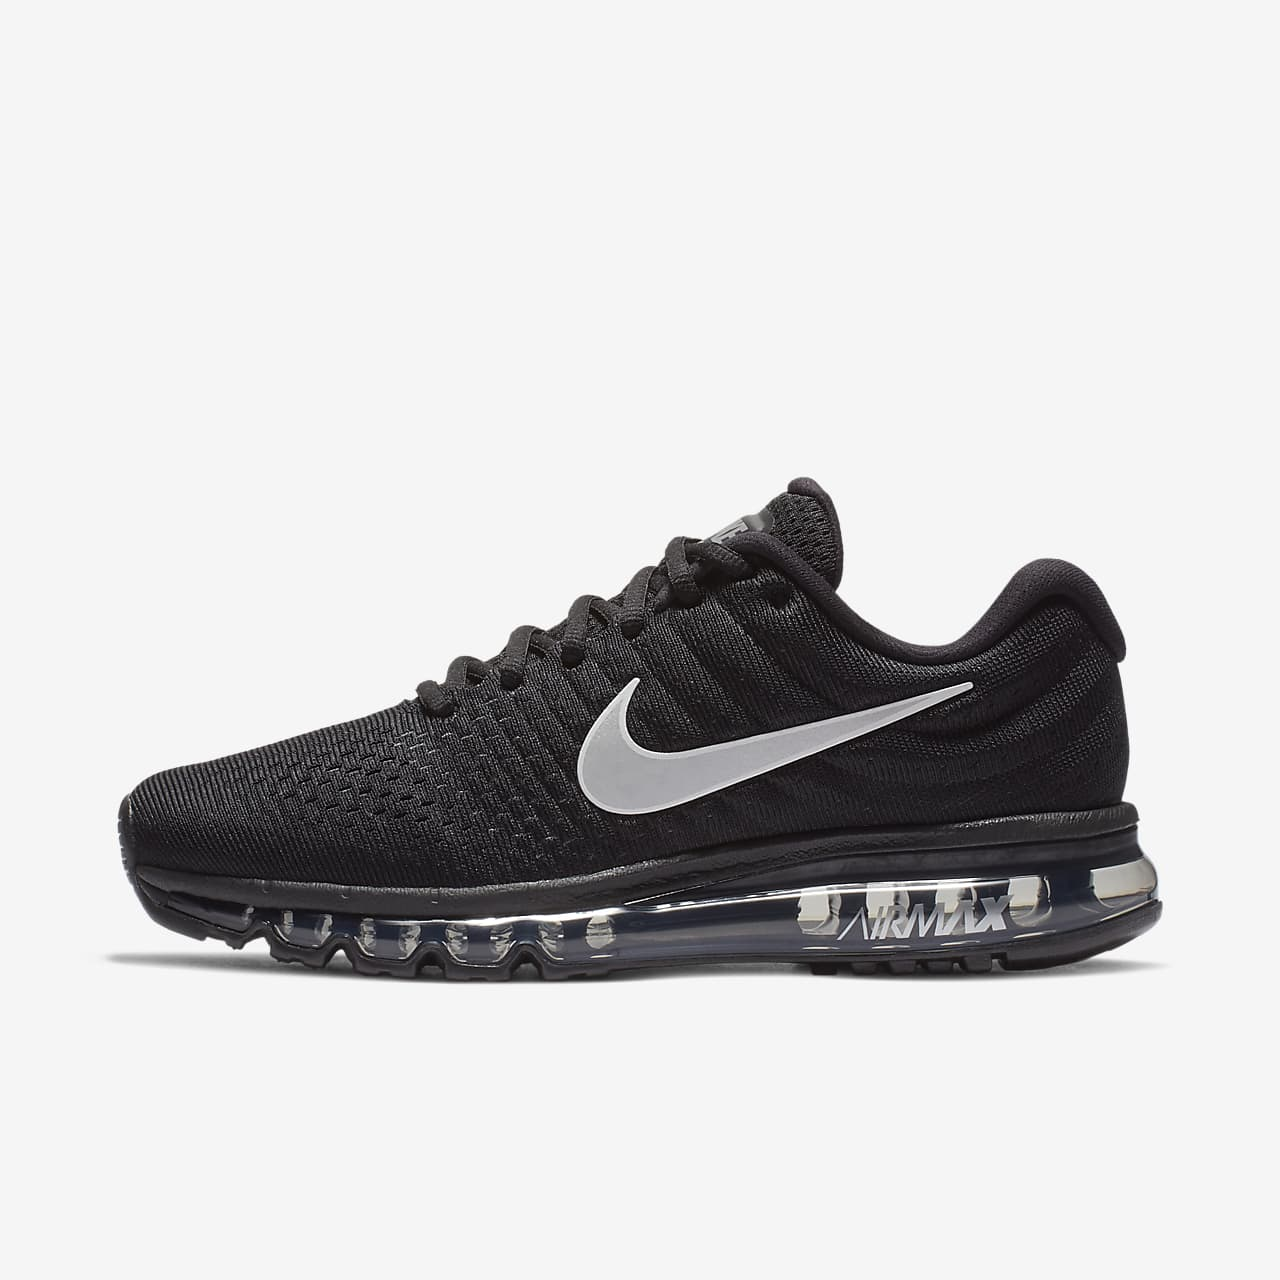 where to buy nike air max 2017 running